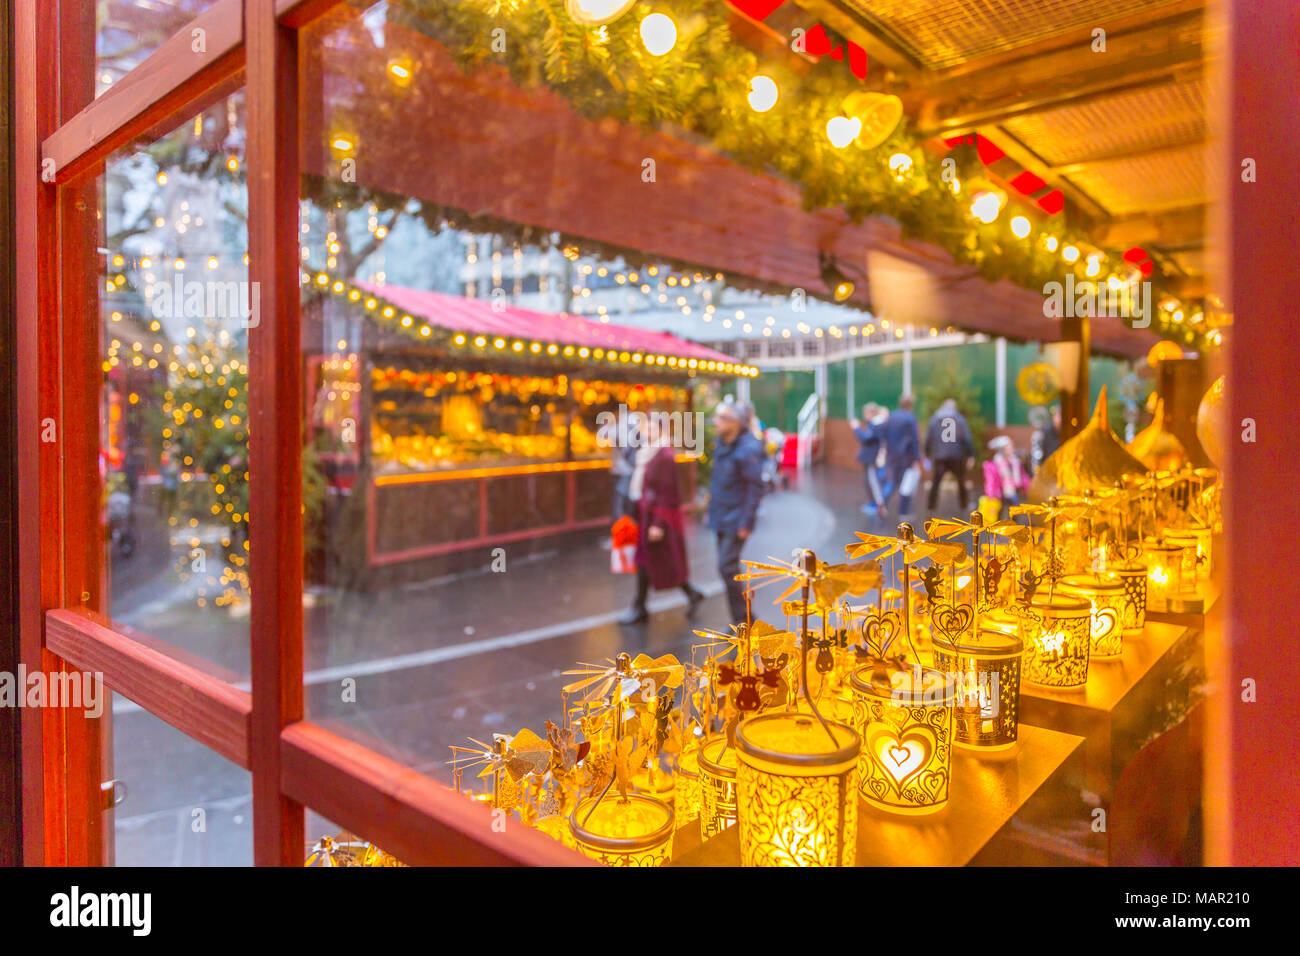 Christmas Market Stalls and shoppers in Leicester Square, London, England, United Kingdom, Europe Stock Photo